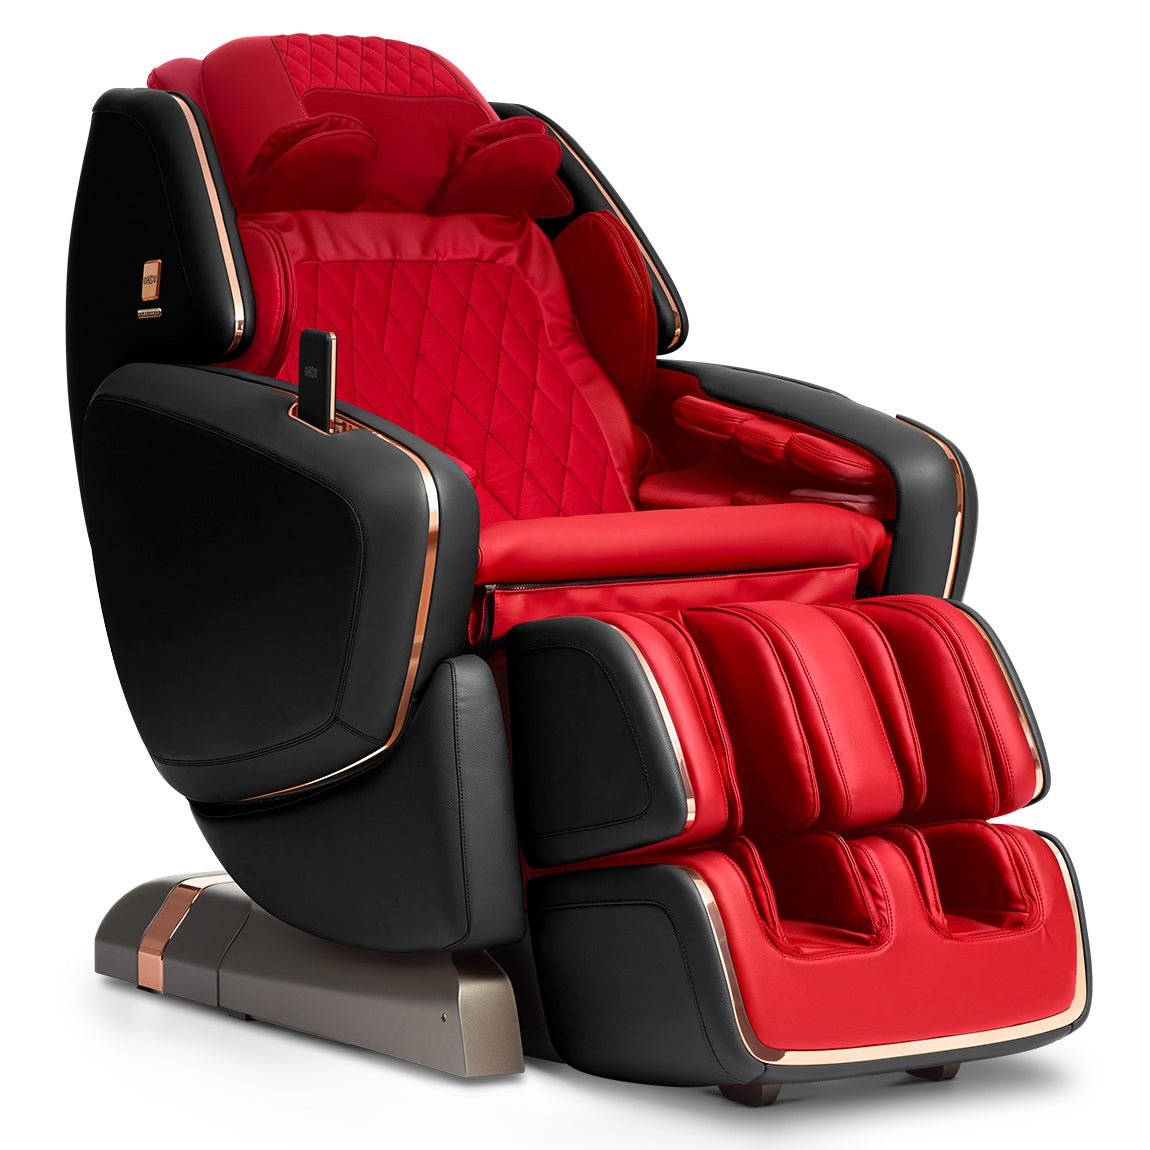 Massage Chair - OHCO M.8LE Massage Chair